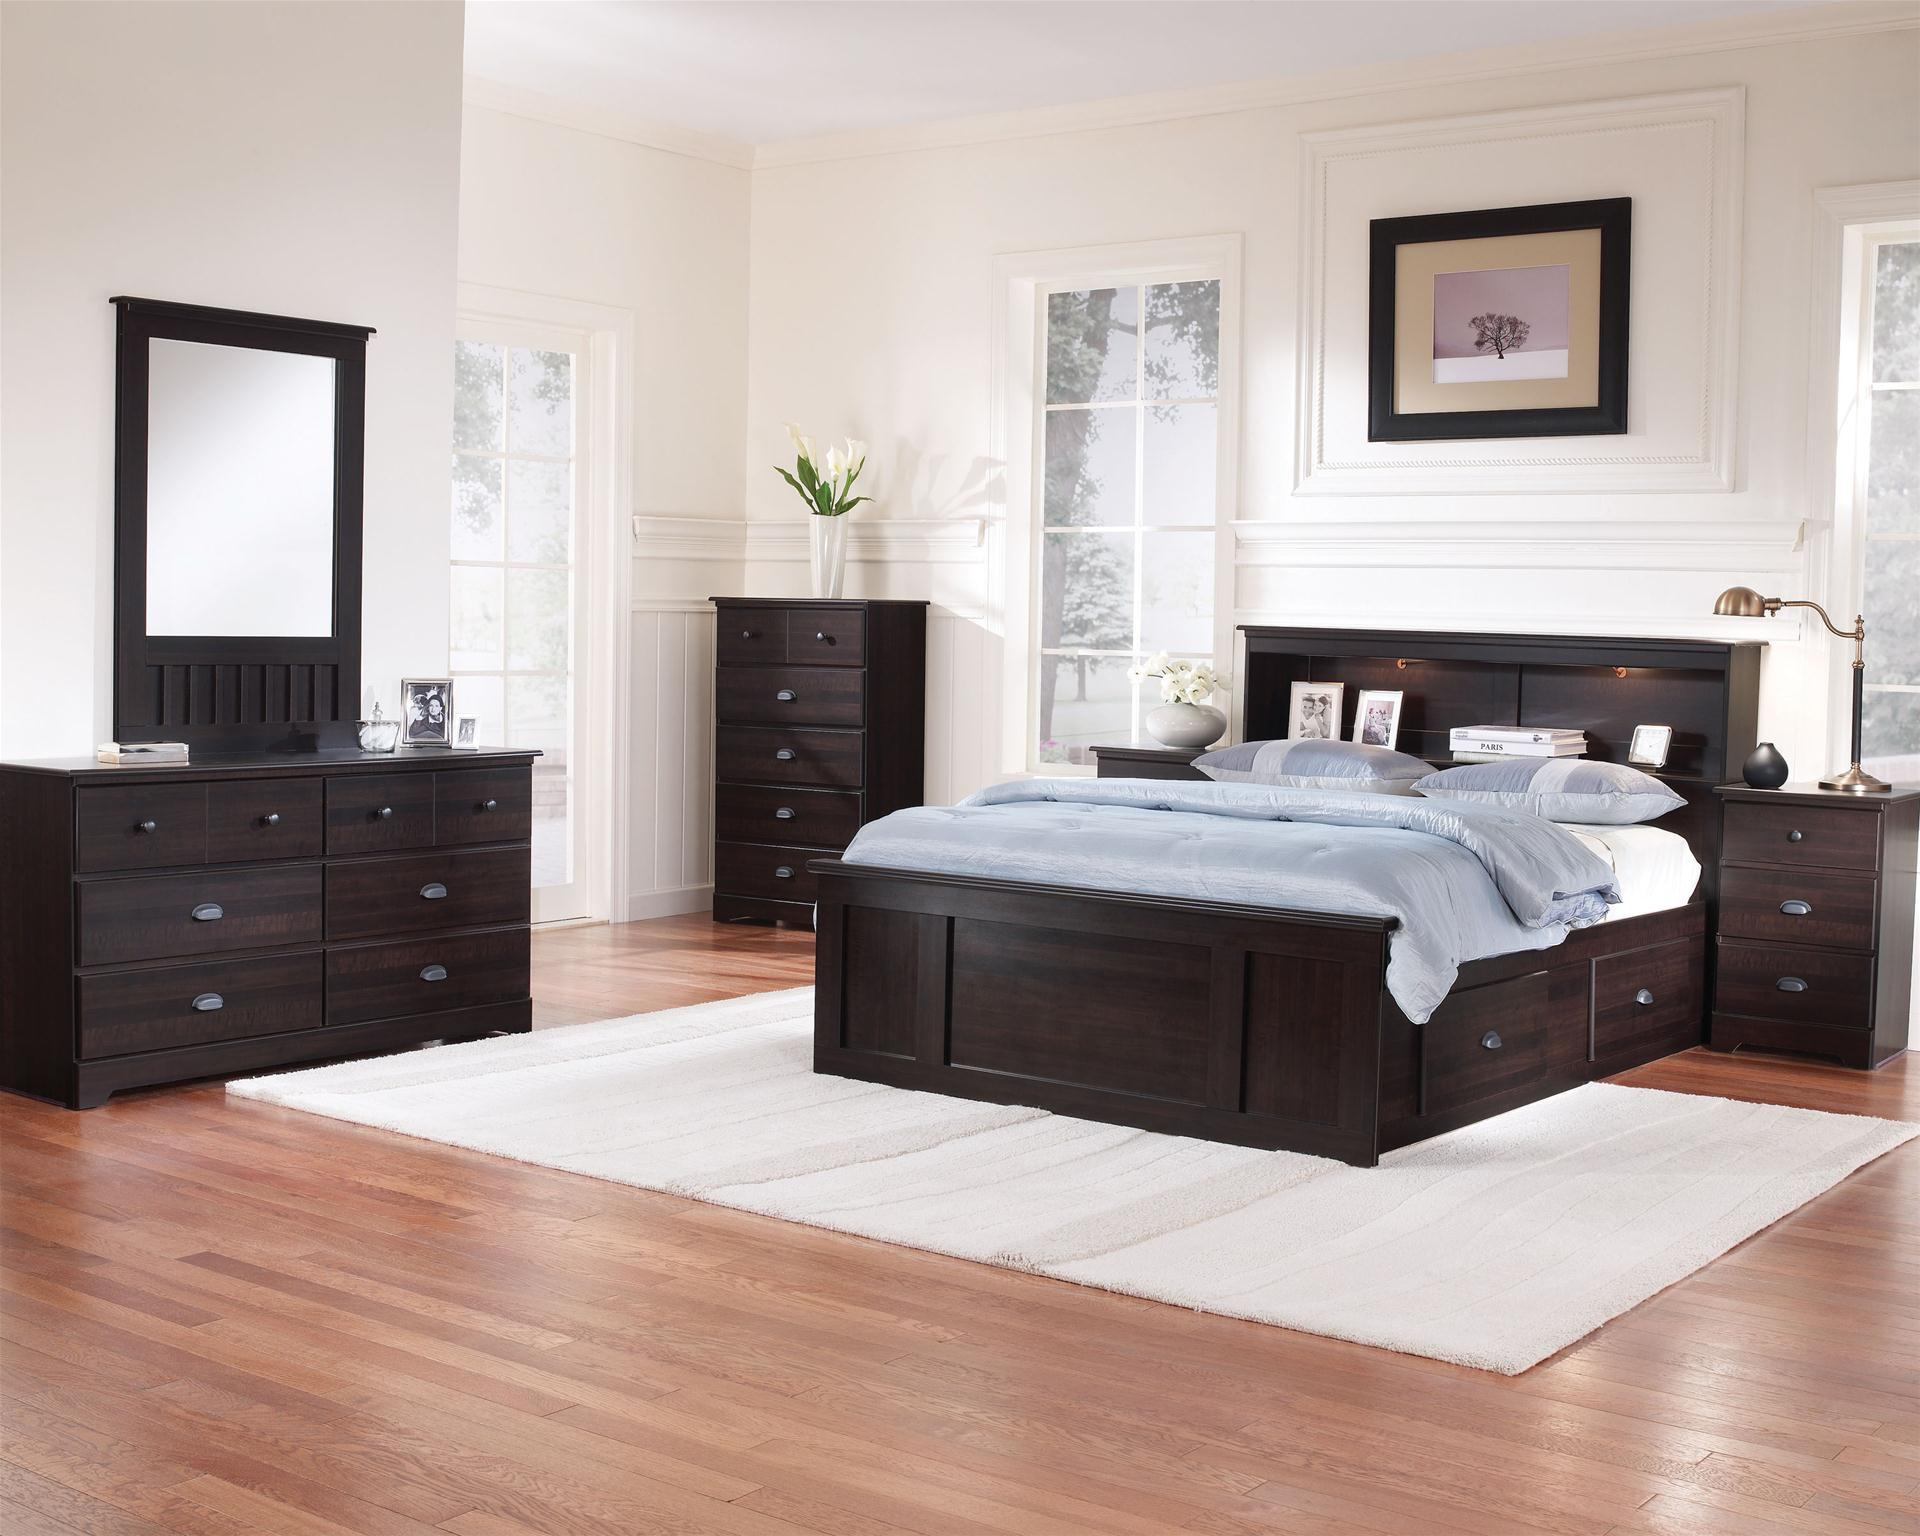 Bayfield-Espresso Maple Collection Pic.jpg